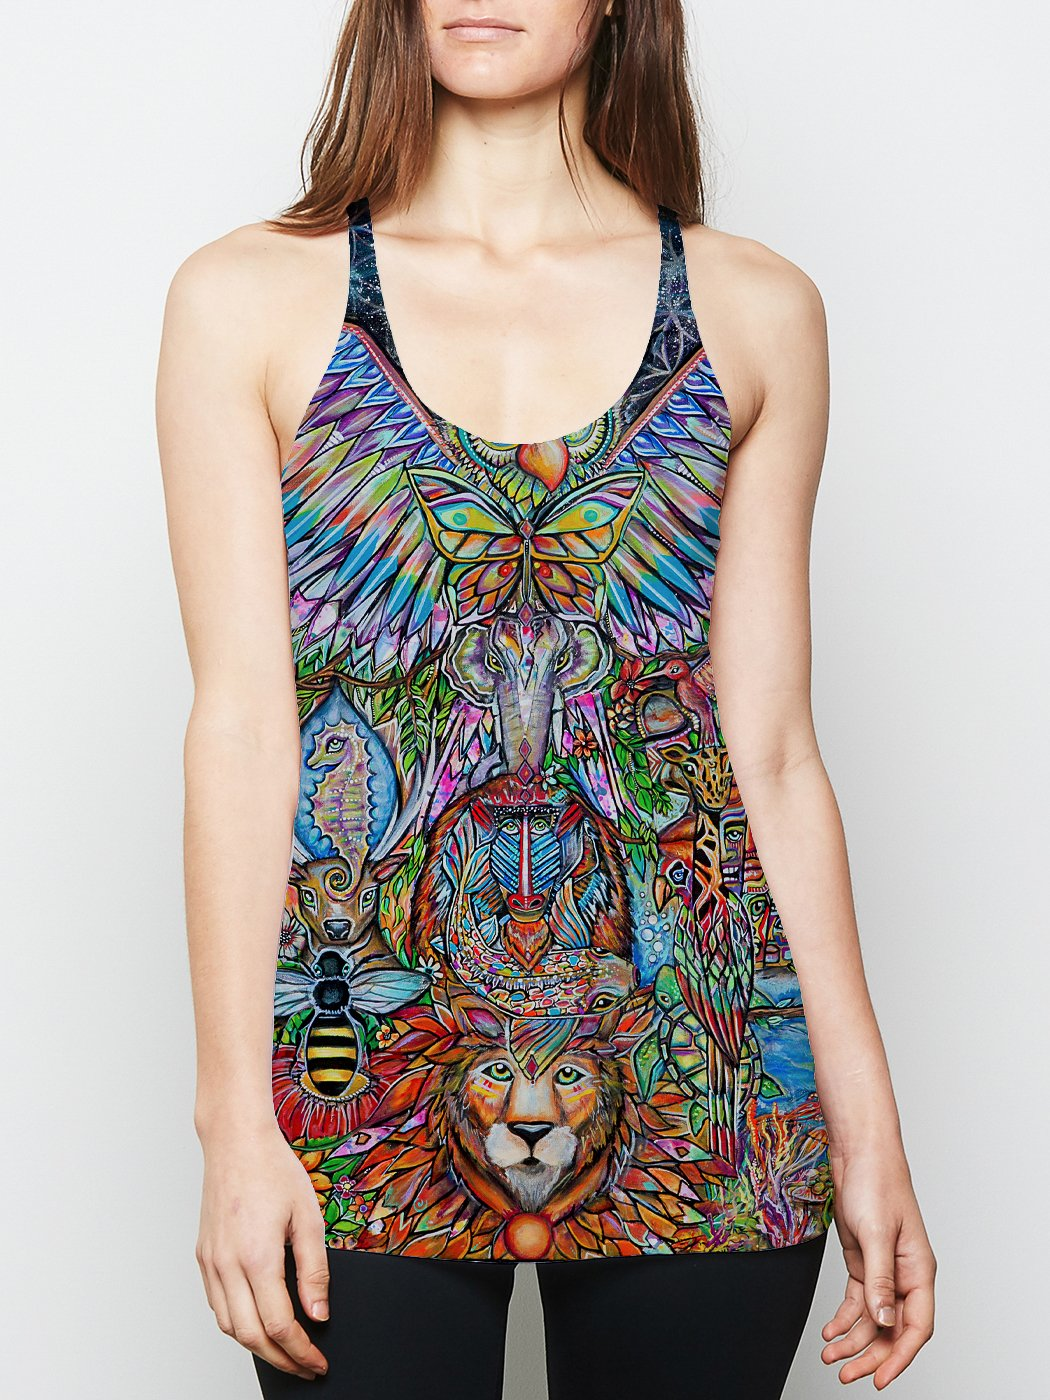 Spirit Totem Racerback Tank Top Tank Tops Electro Threads